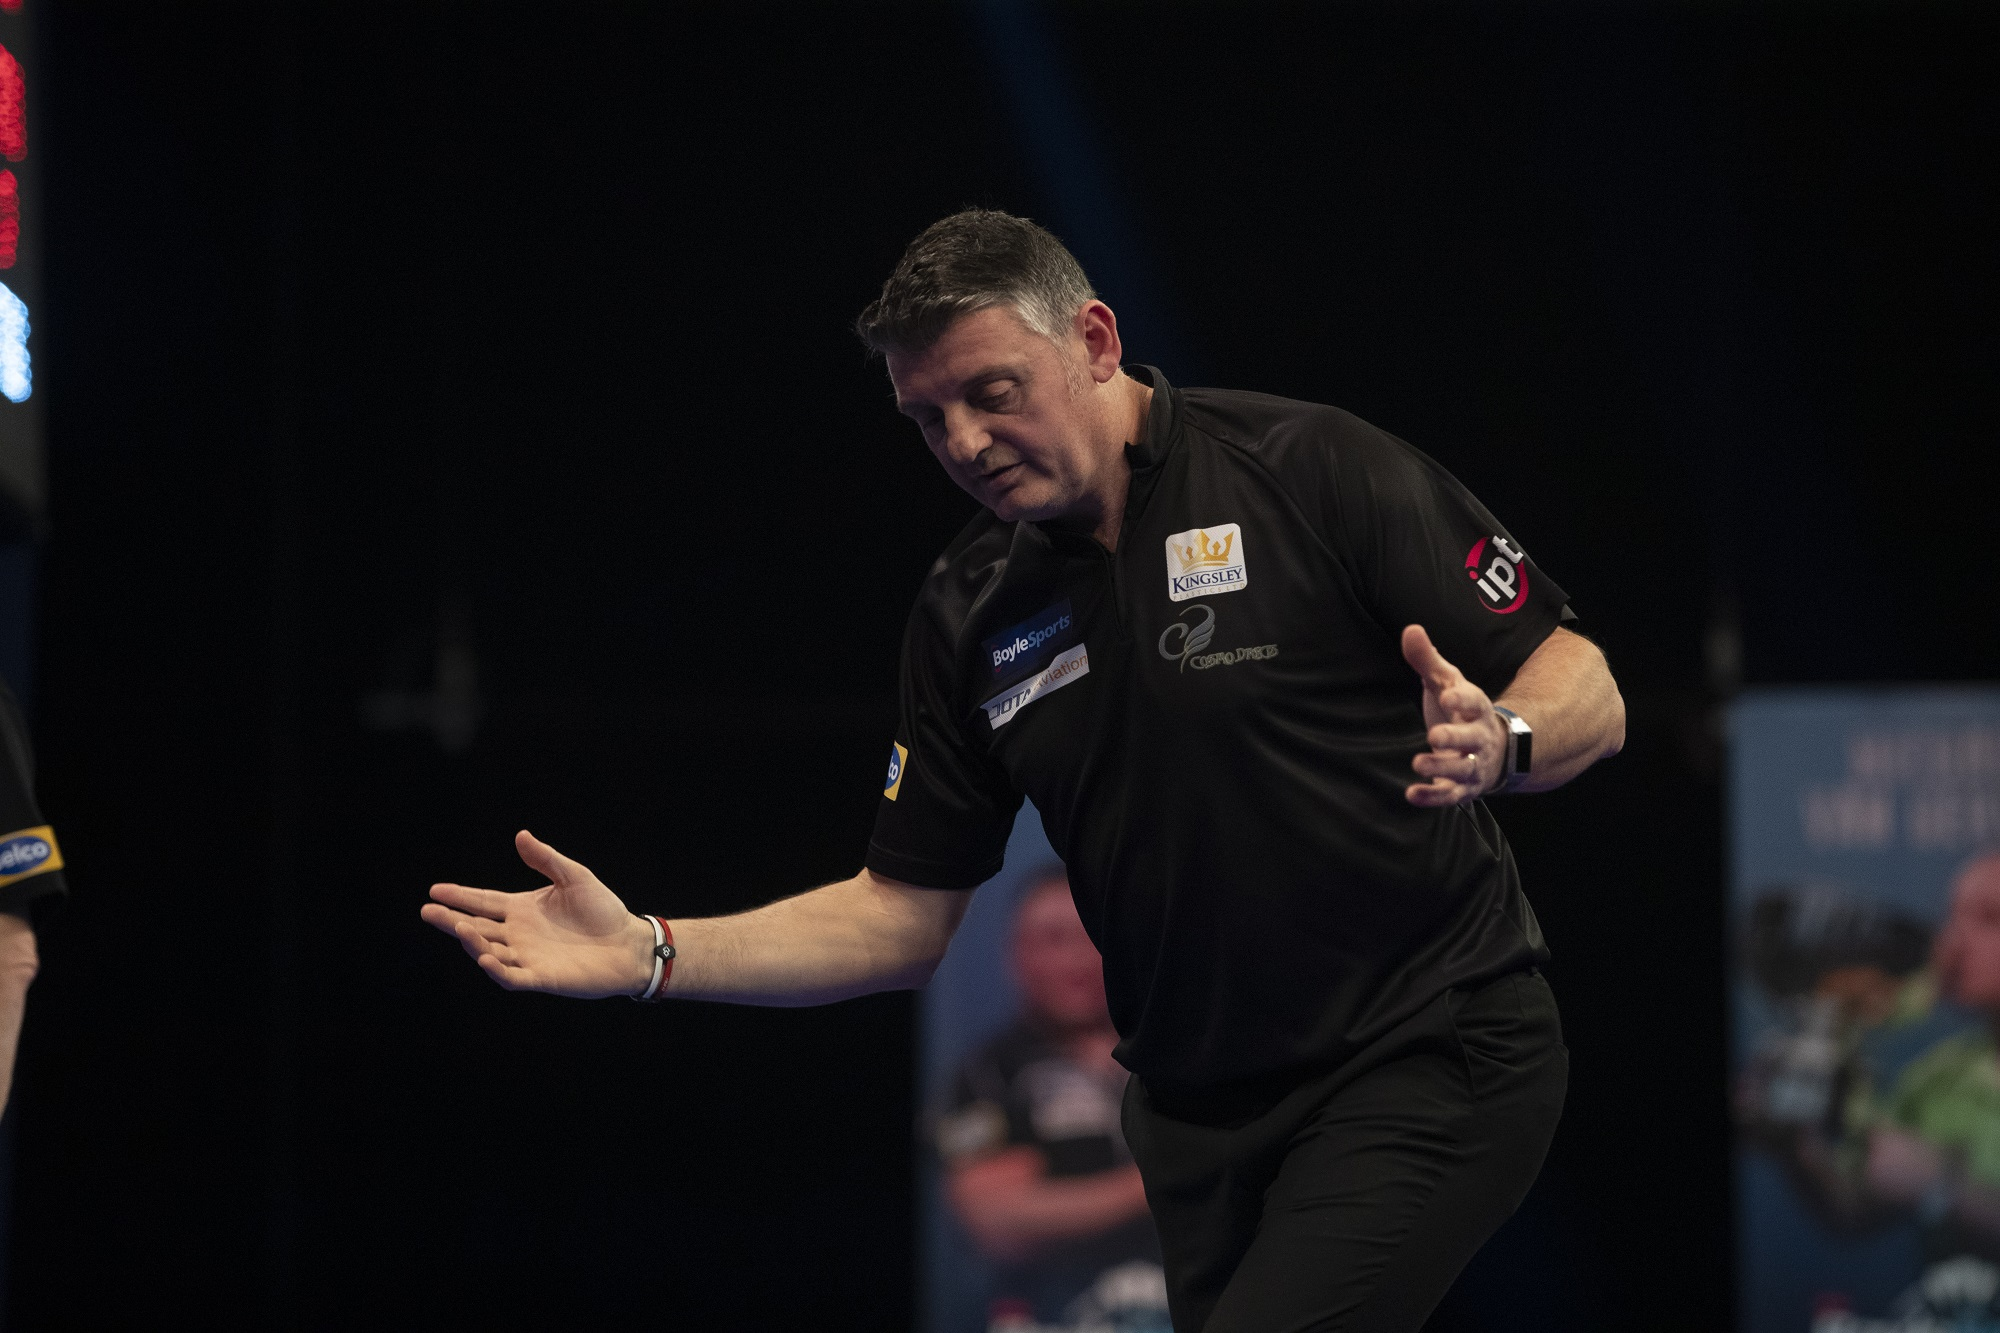 Justin Pipe will miss the Ladbrokes UK Open